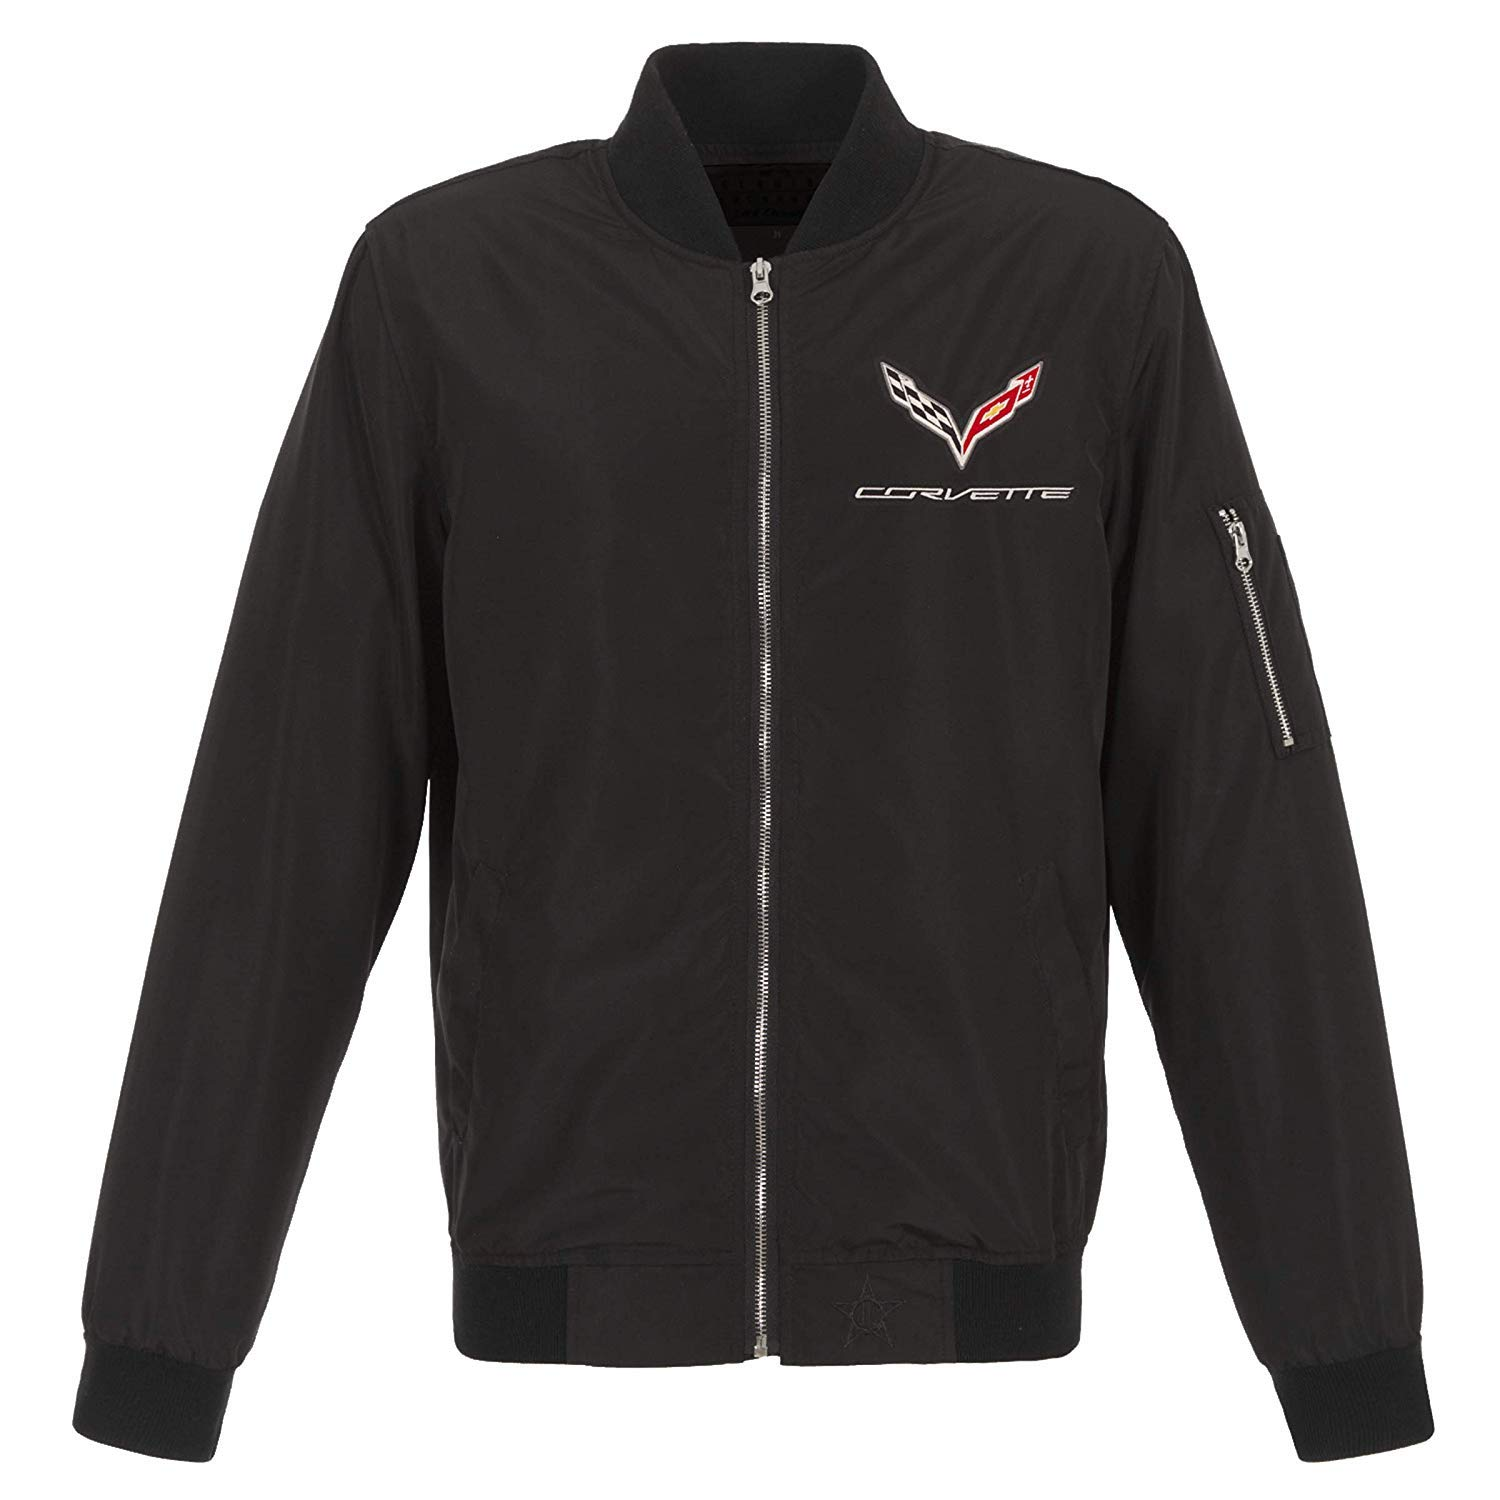 JH DESIGN GROUP Mens Chevy Corvette Lightweight Zip-Up Nylon Jacket with Knit Trim COR9N3BMB8BLK